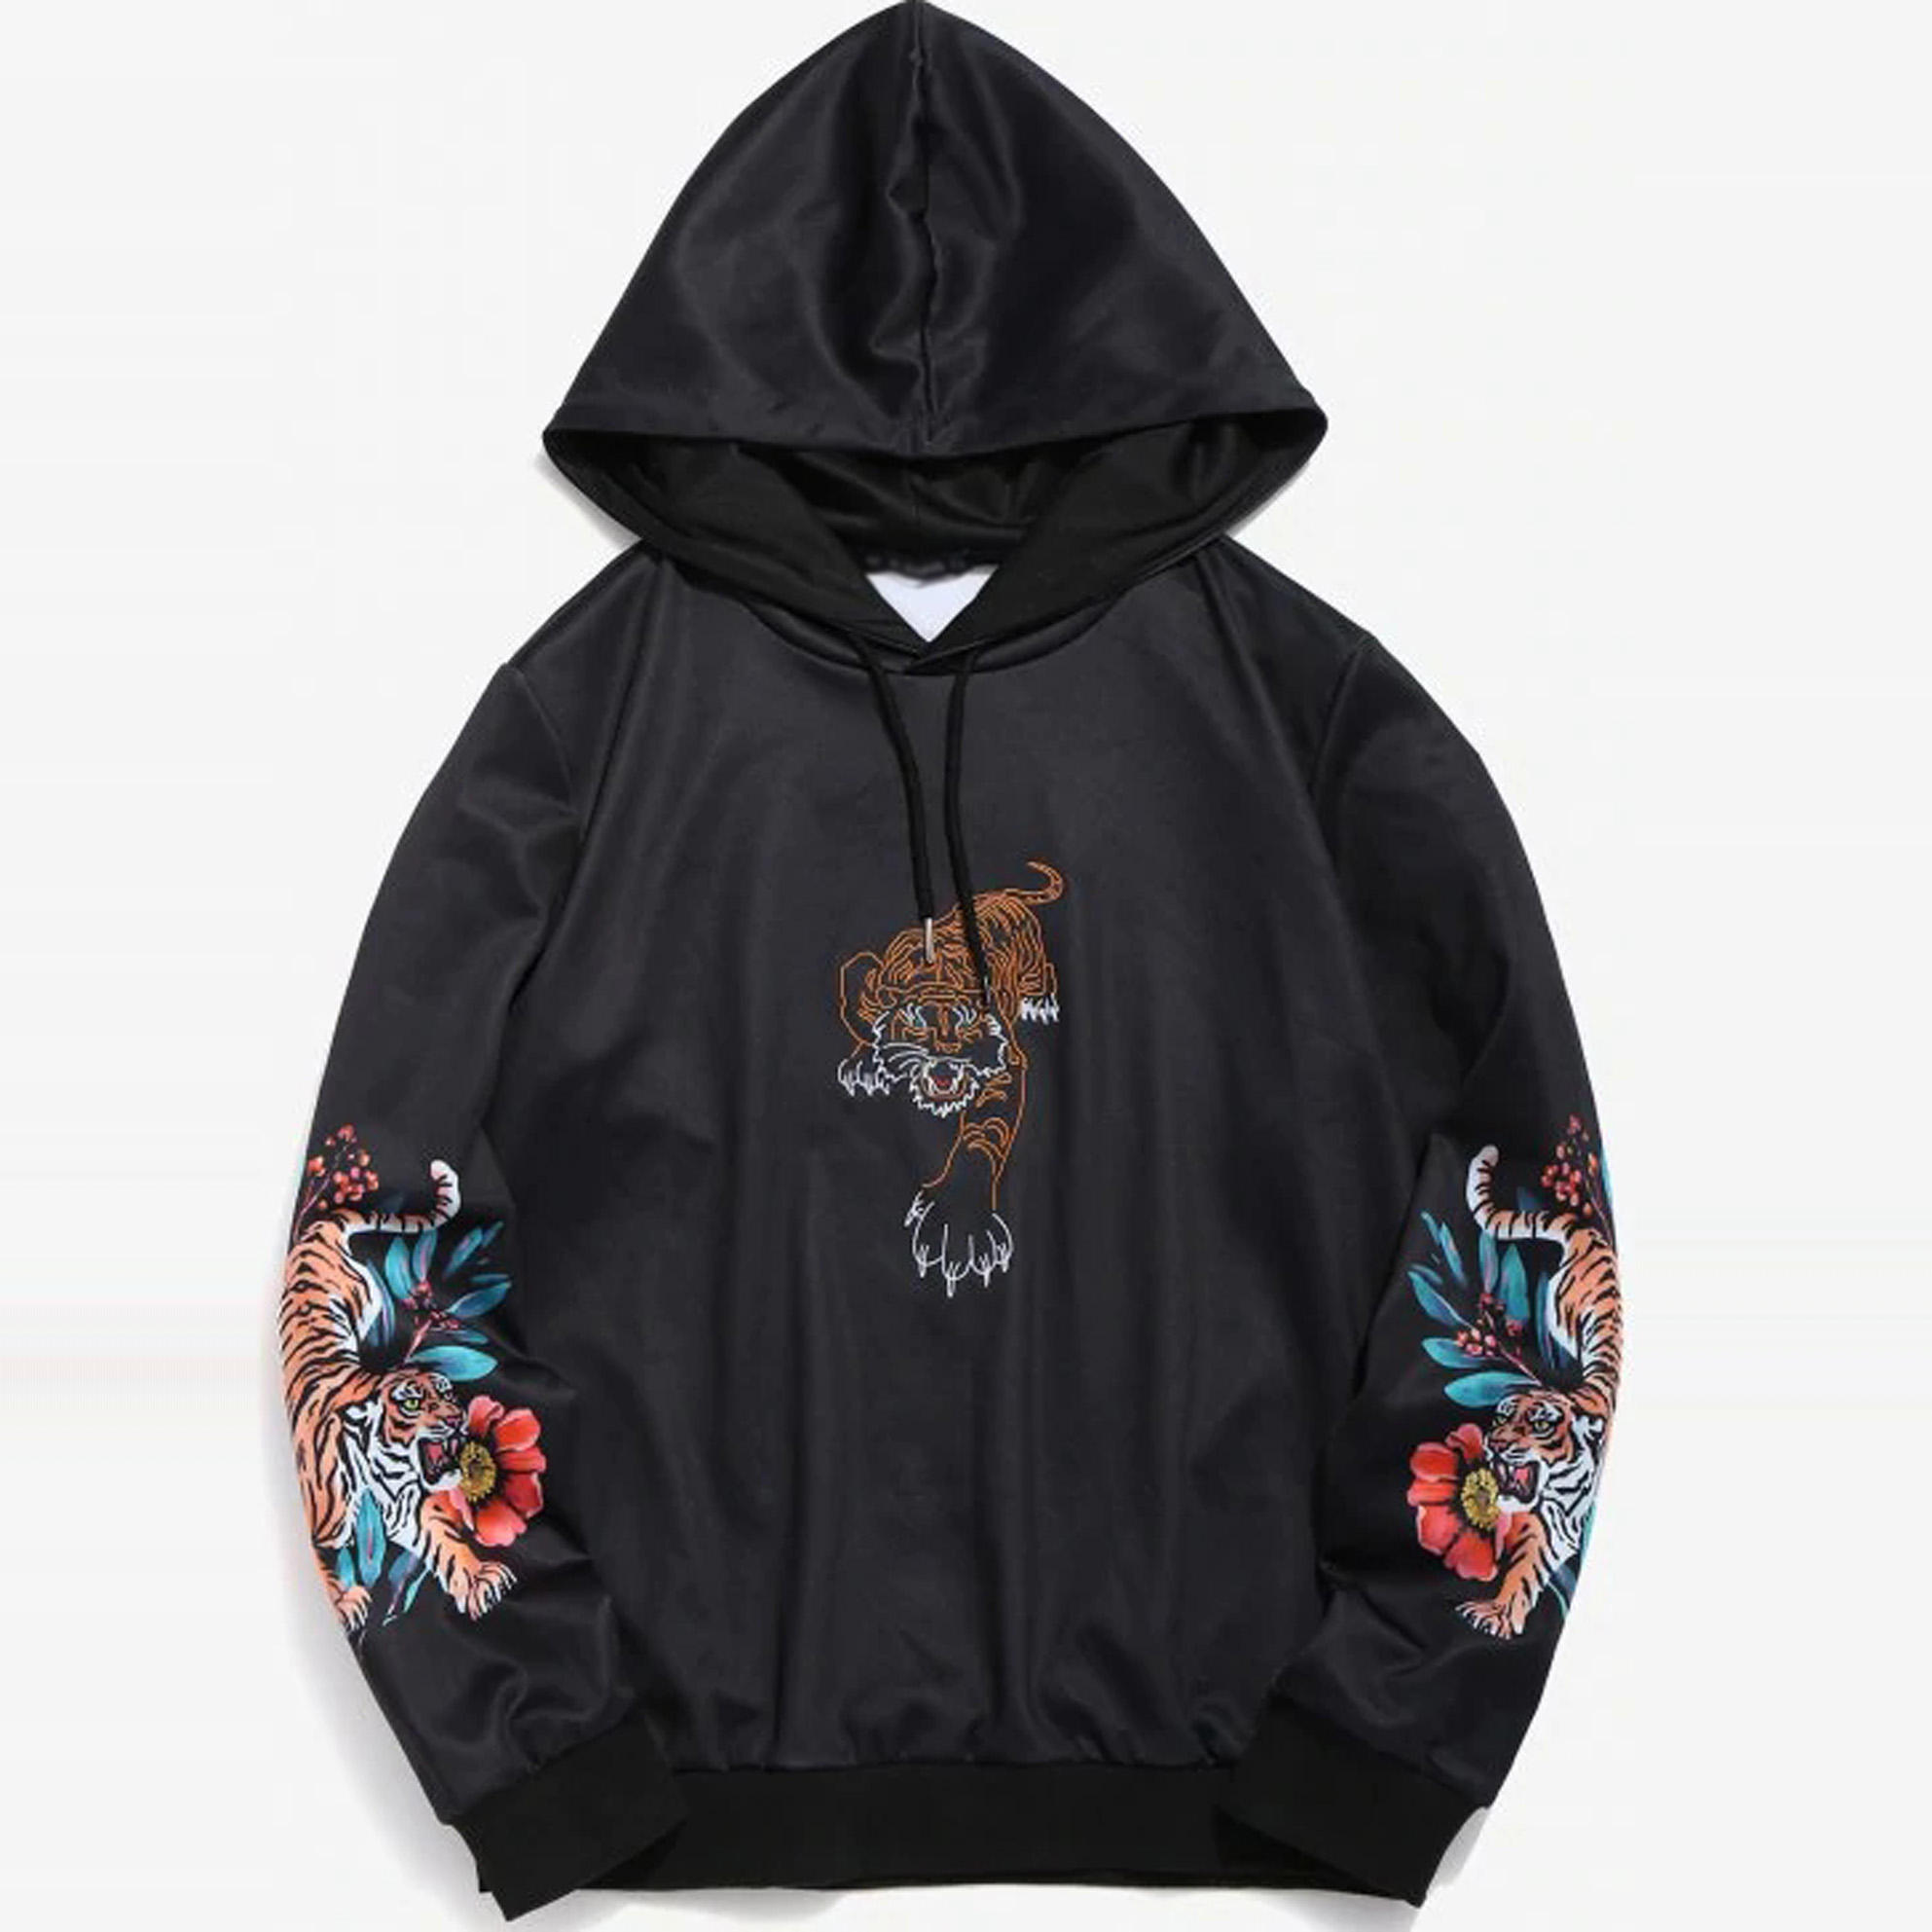 2019 new arrival sweater embroidery black men hoodie with tiger print